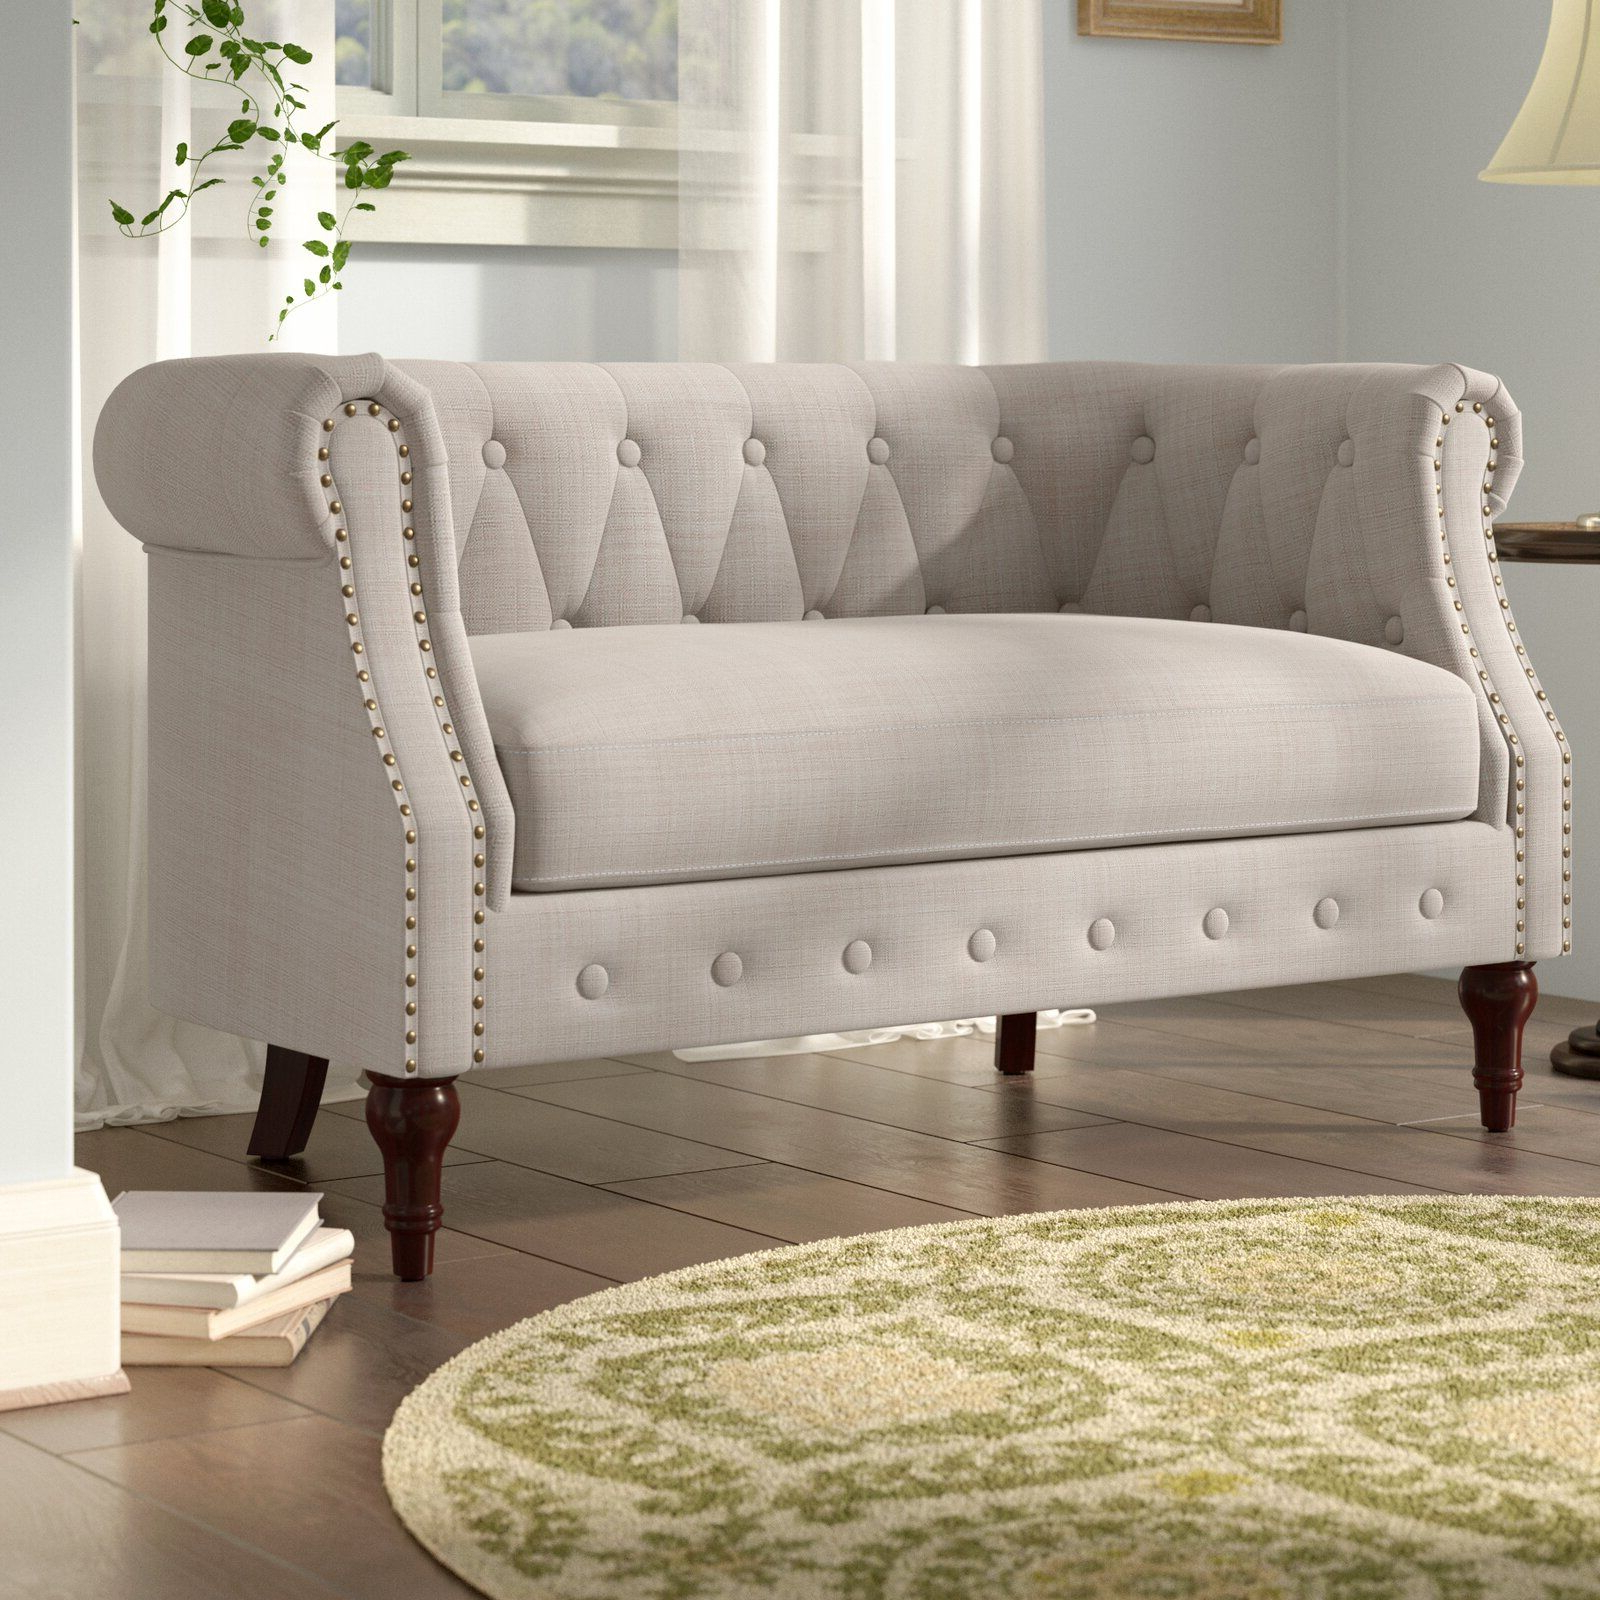 Preferred Kjellfrid Chesterfield Chairs Intended For Pinalexa On Home Decor Furniture In (View 5 of 20)